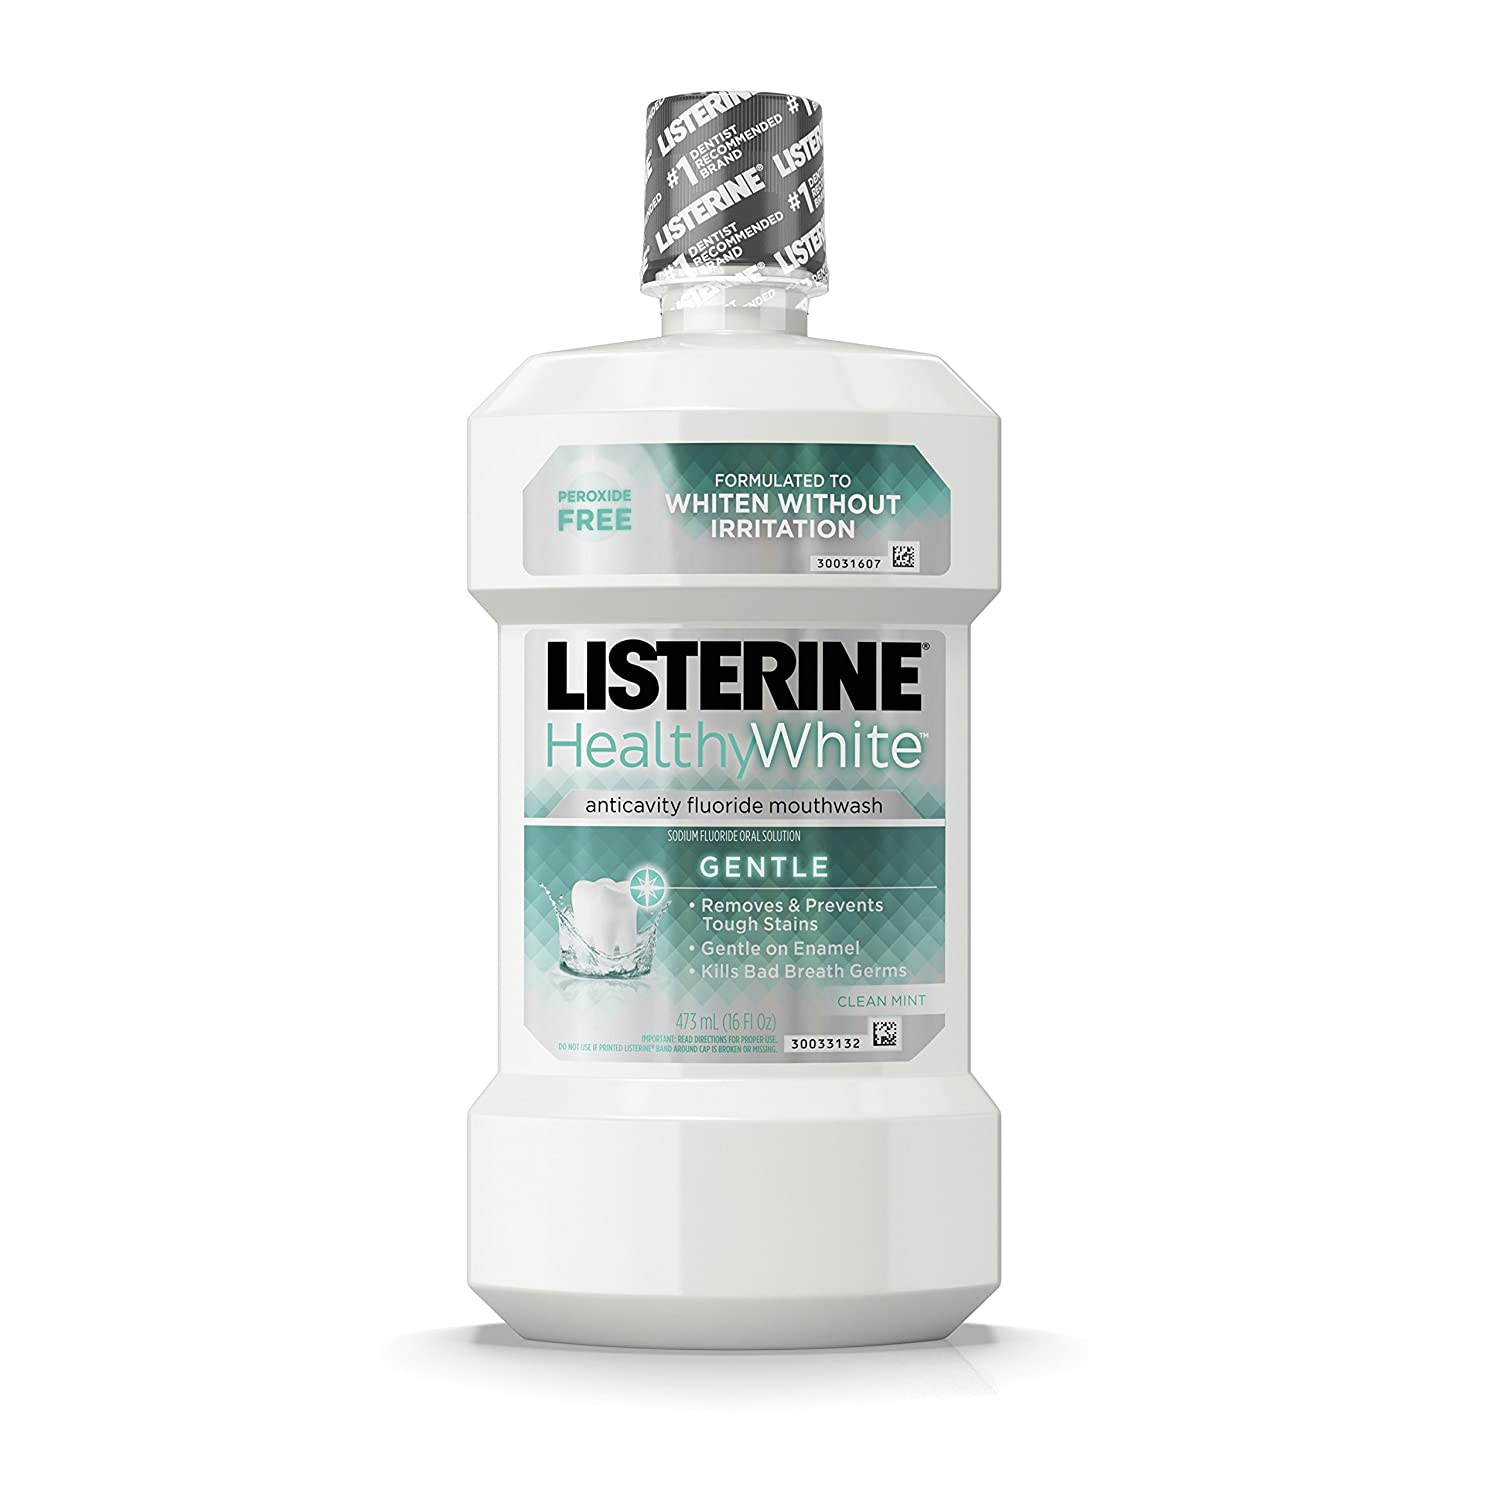 Listerine Healthy White Anticavity Peroxide-Free Fluoride Mouthwash, Gentle Mouth Rinse for Teeth Whitening, Stain Remover and Bad Breath, Clean Mint, 16 fl. oz